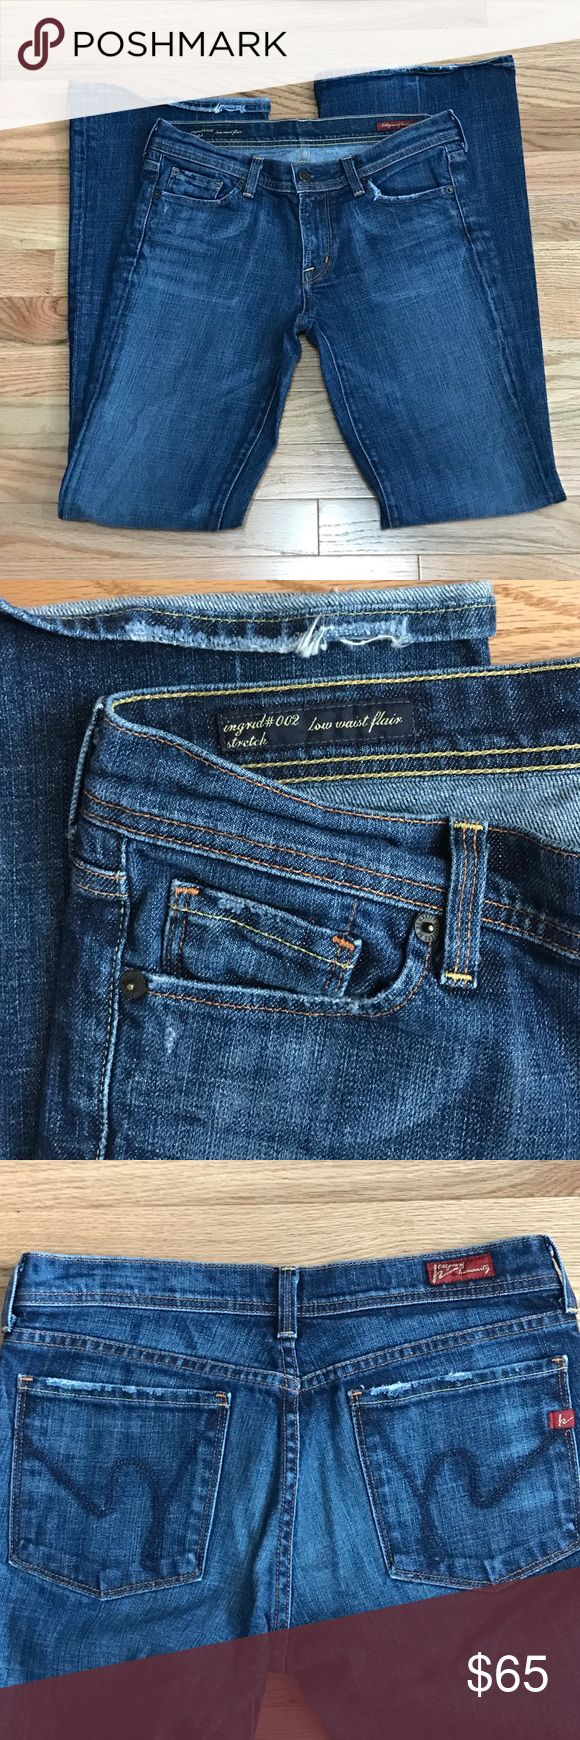 🌟Flash Sale Citizens of Humanity 27 Ingrid Jeans Citizens of Humanity Size 27 Ingrid Jeans, distressed pockets and cuffs, inseam 32, rise 9 Citizens of Humanity Jeans Flare & Wide Leg